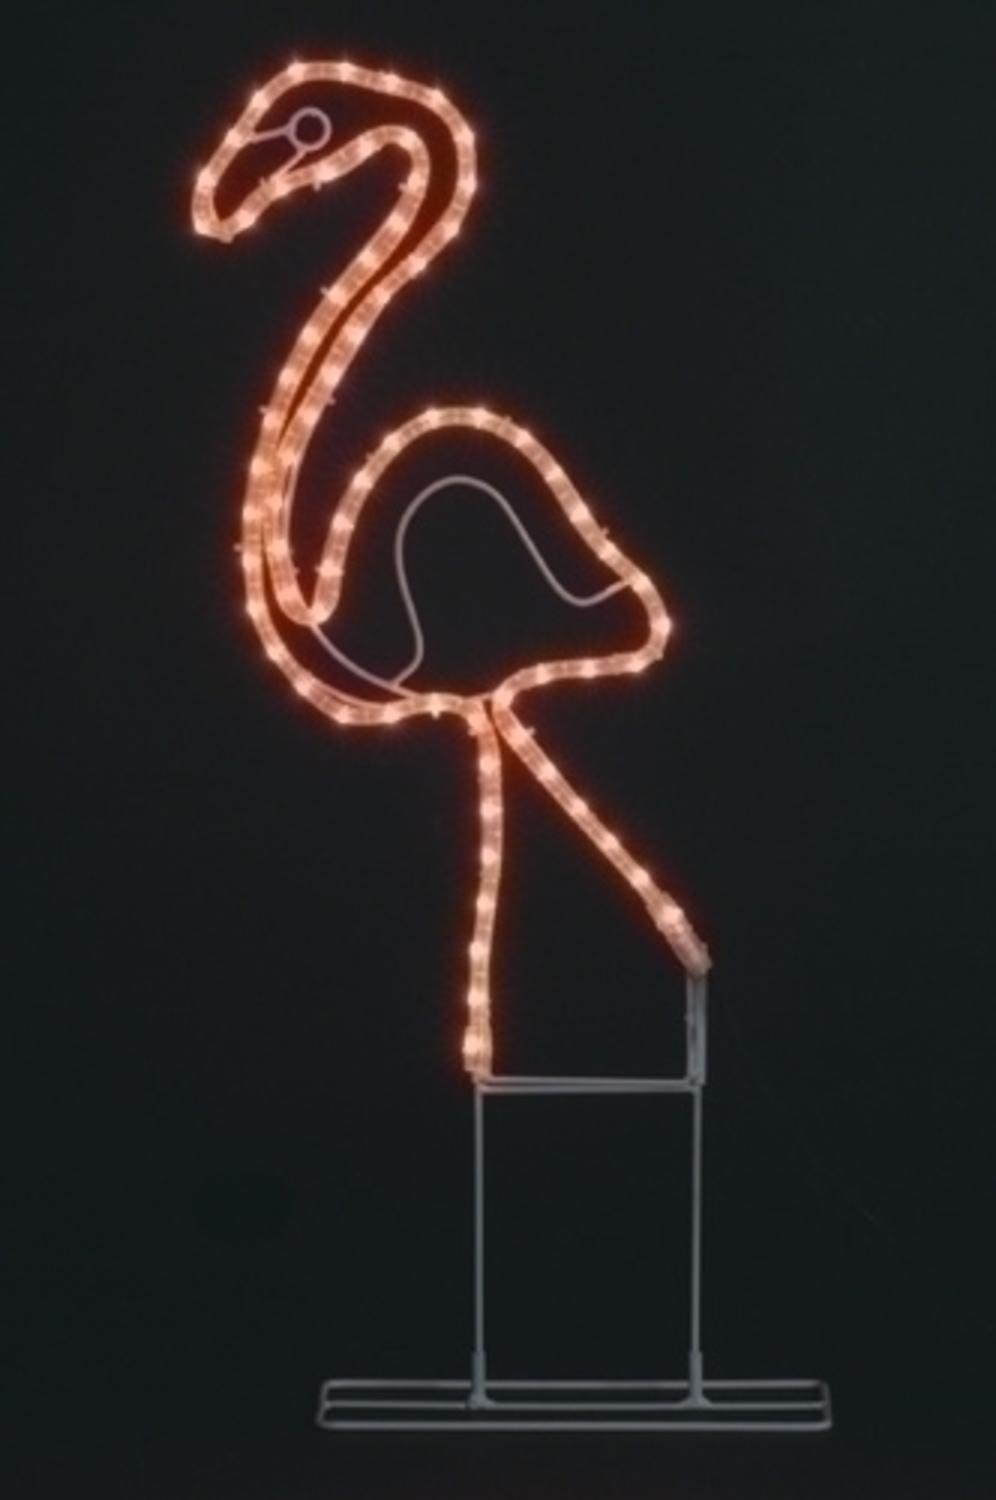 Northlight Tropical Lighted Pink Flamingo Rope Light Outdoor Yard Art Decoration, 24'' by Northlight (Image #2)